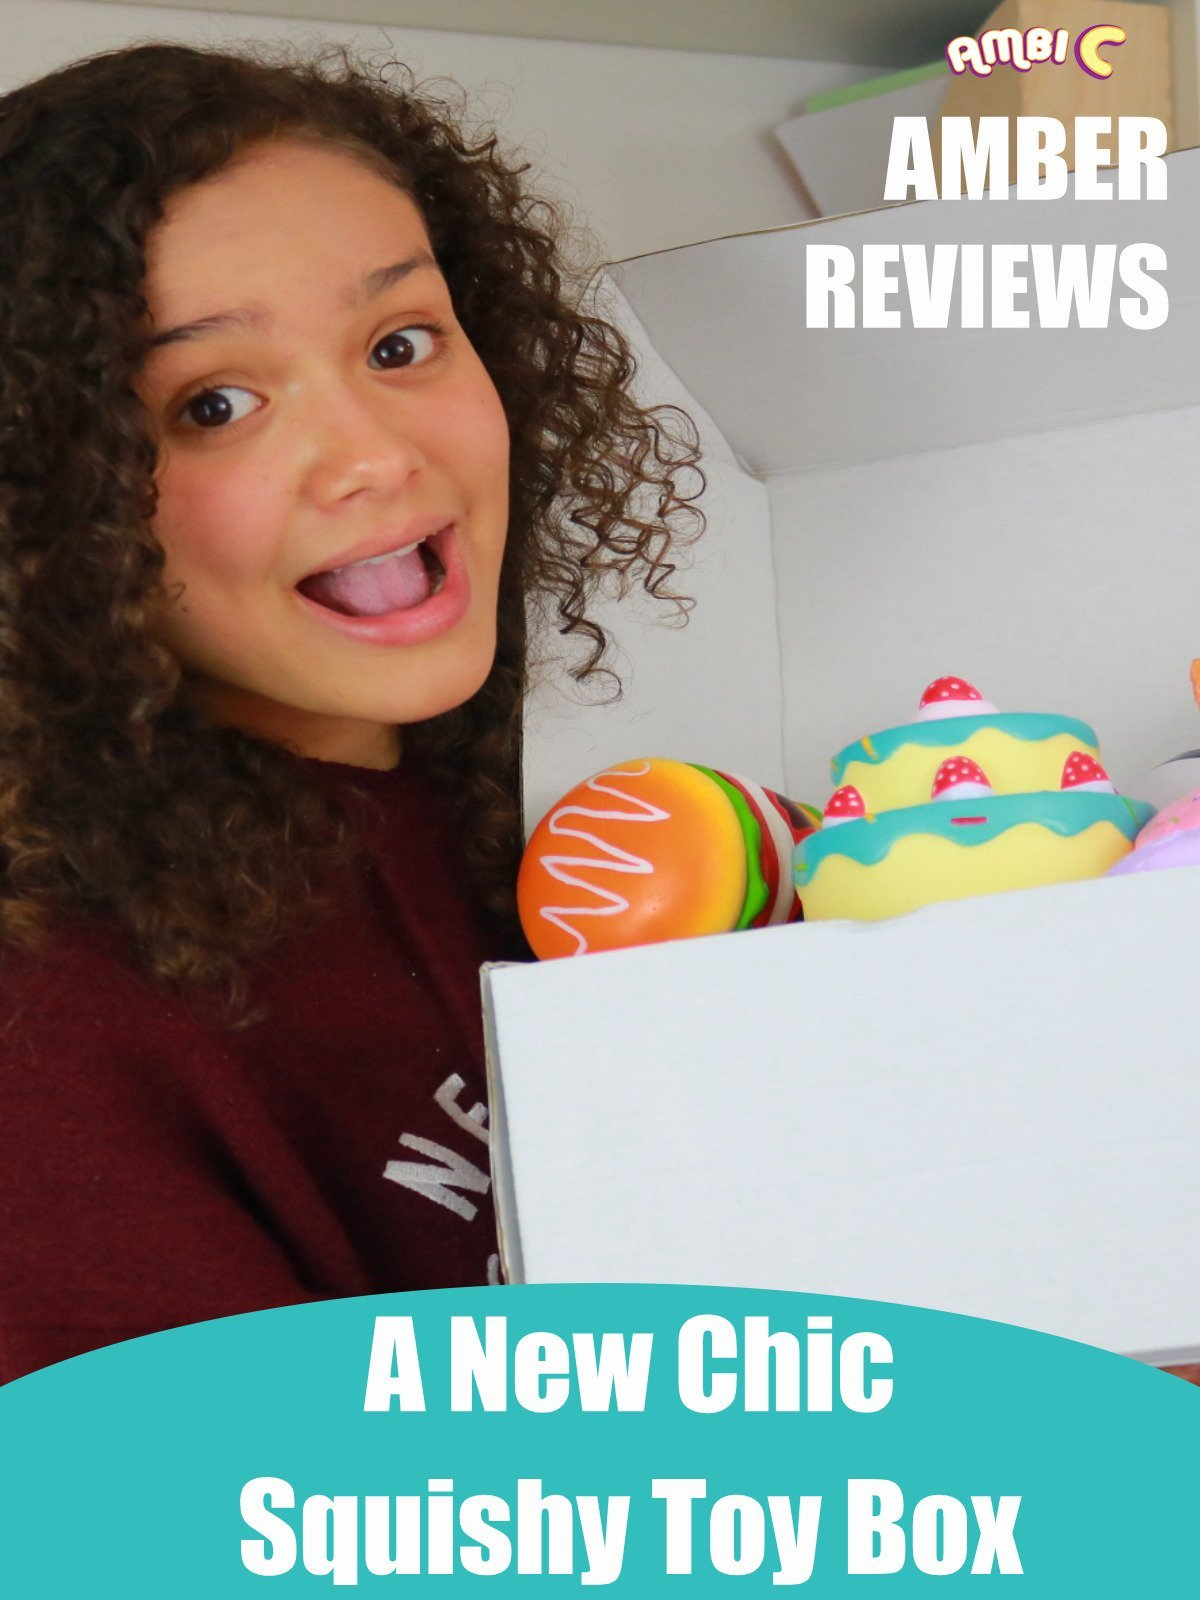 Amber Reviews a New Chic Squishy Toy Box